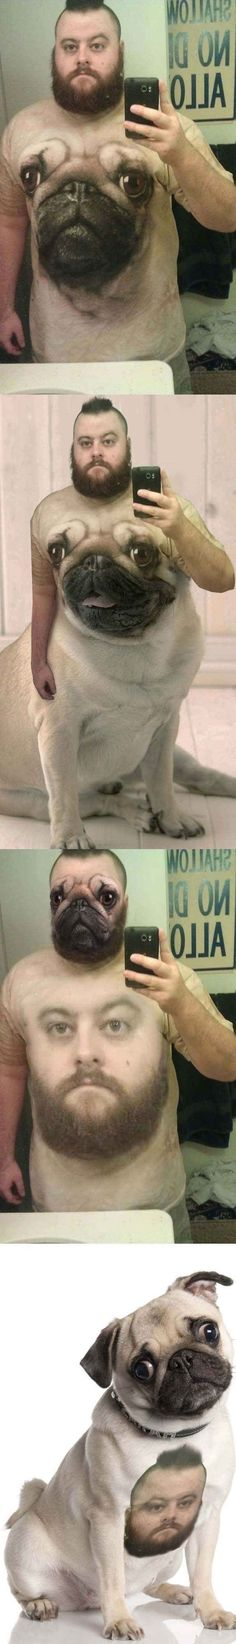 So creepy! This man in a pug outfit. Oh, wait, ew, and the poor pug with his daddy's face on him, too! How disturbing! Funny Photos Of People, Funny Pictures, Laughing So Hard, Can't Stop Laughing, Pug Shirt, Best Selfies, Face Swaps, Memes In Real Life, Pug Love